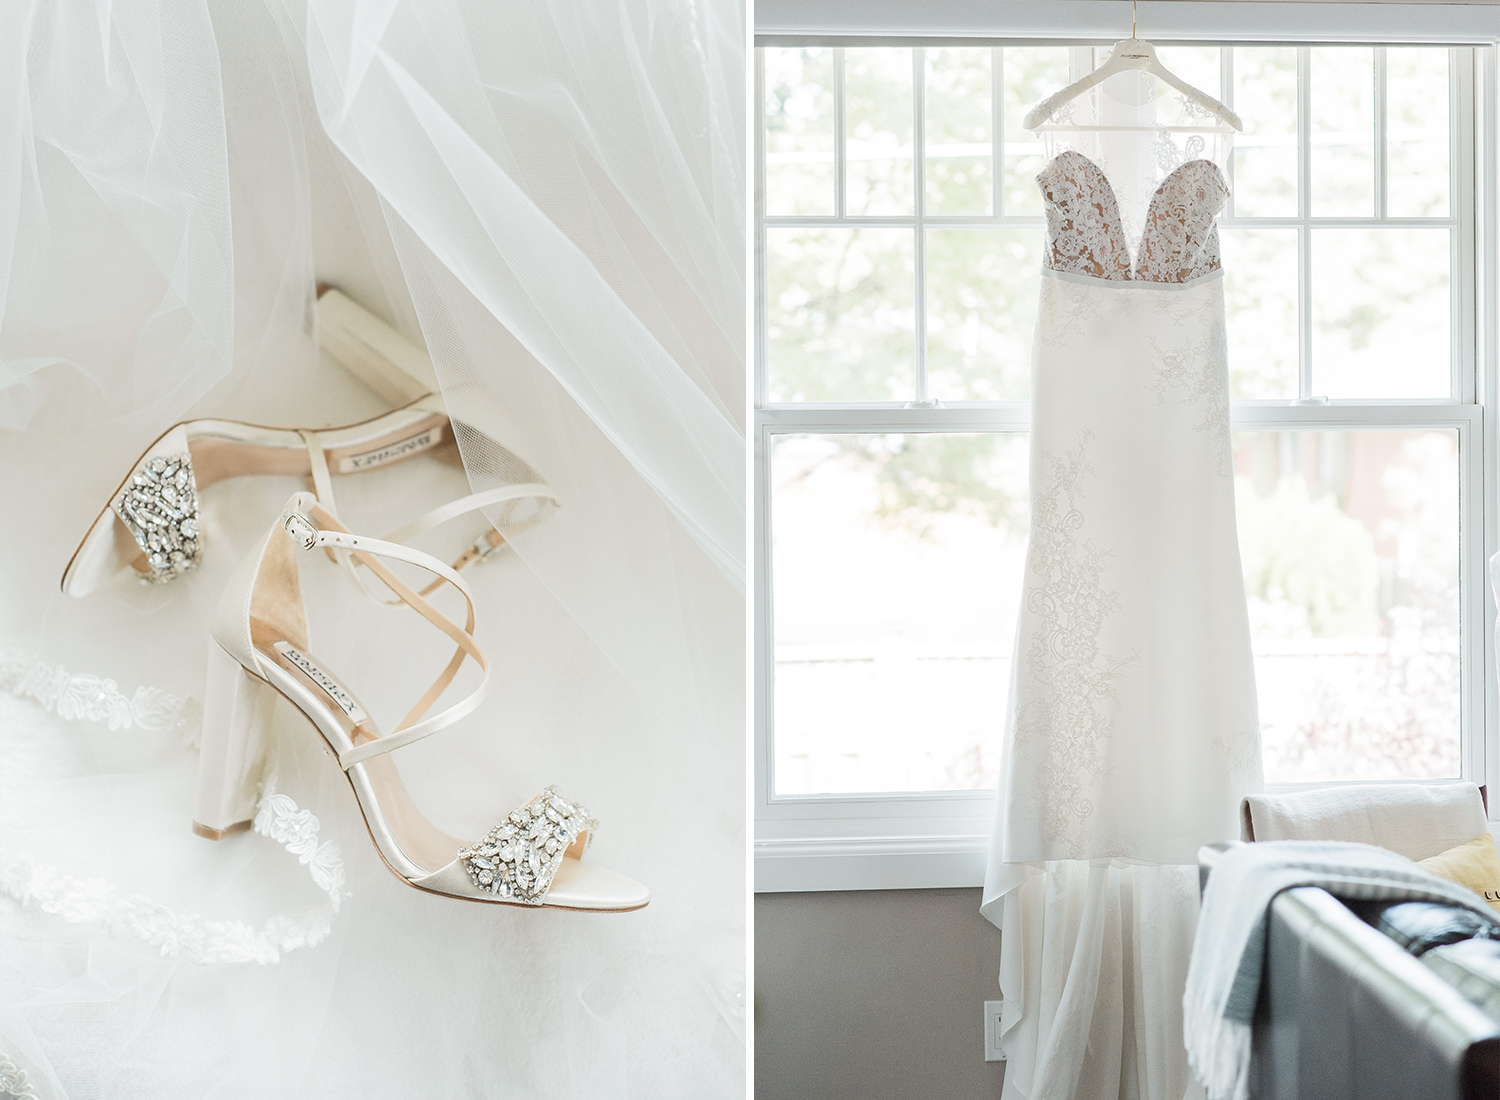 bride dress hanging in window and detail of badgley mischka shoes